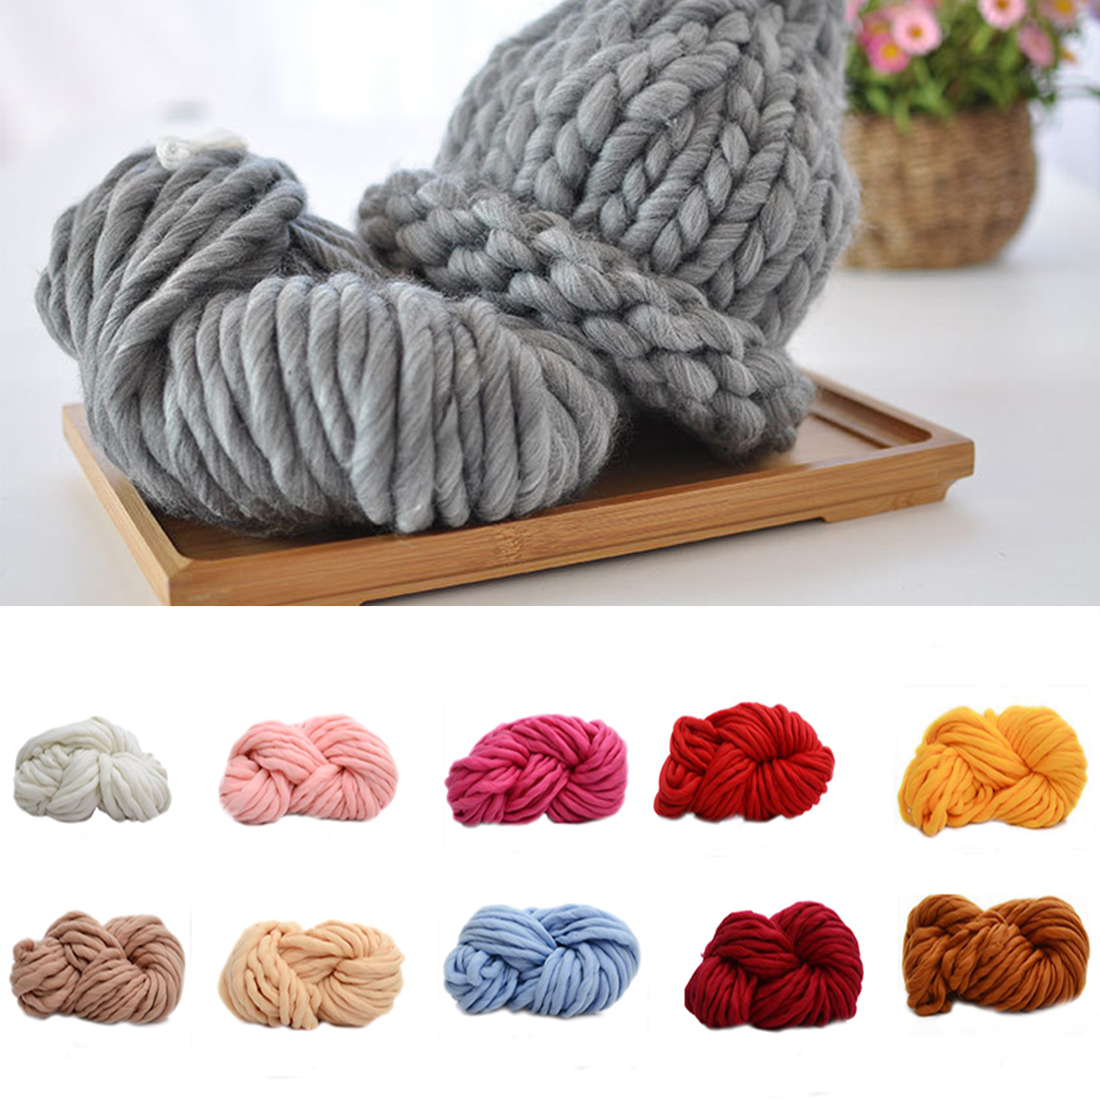 Hand Knitting Yarn Design : Thick yarn for knitting threads hand knit scarf soft